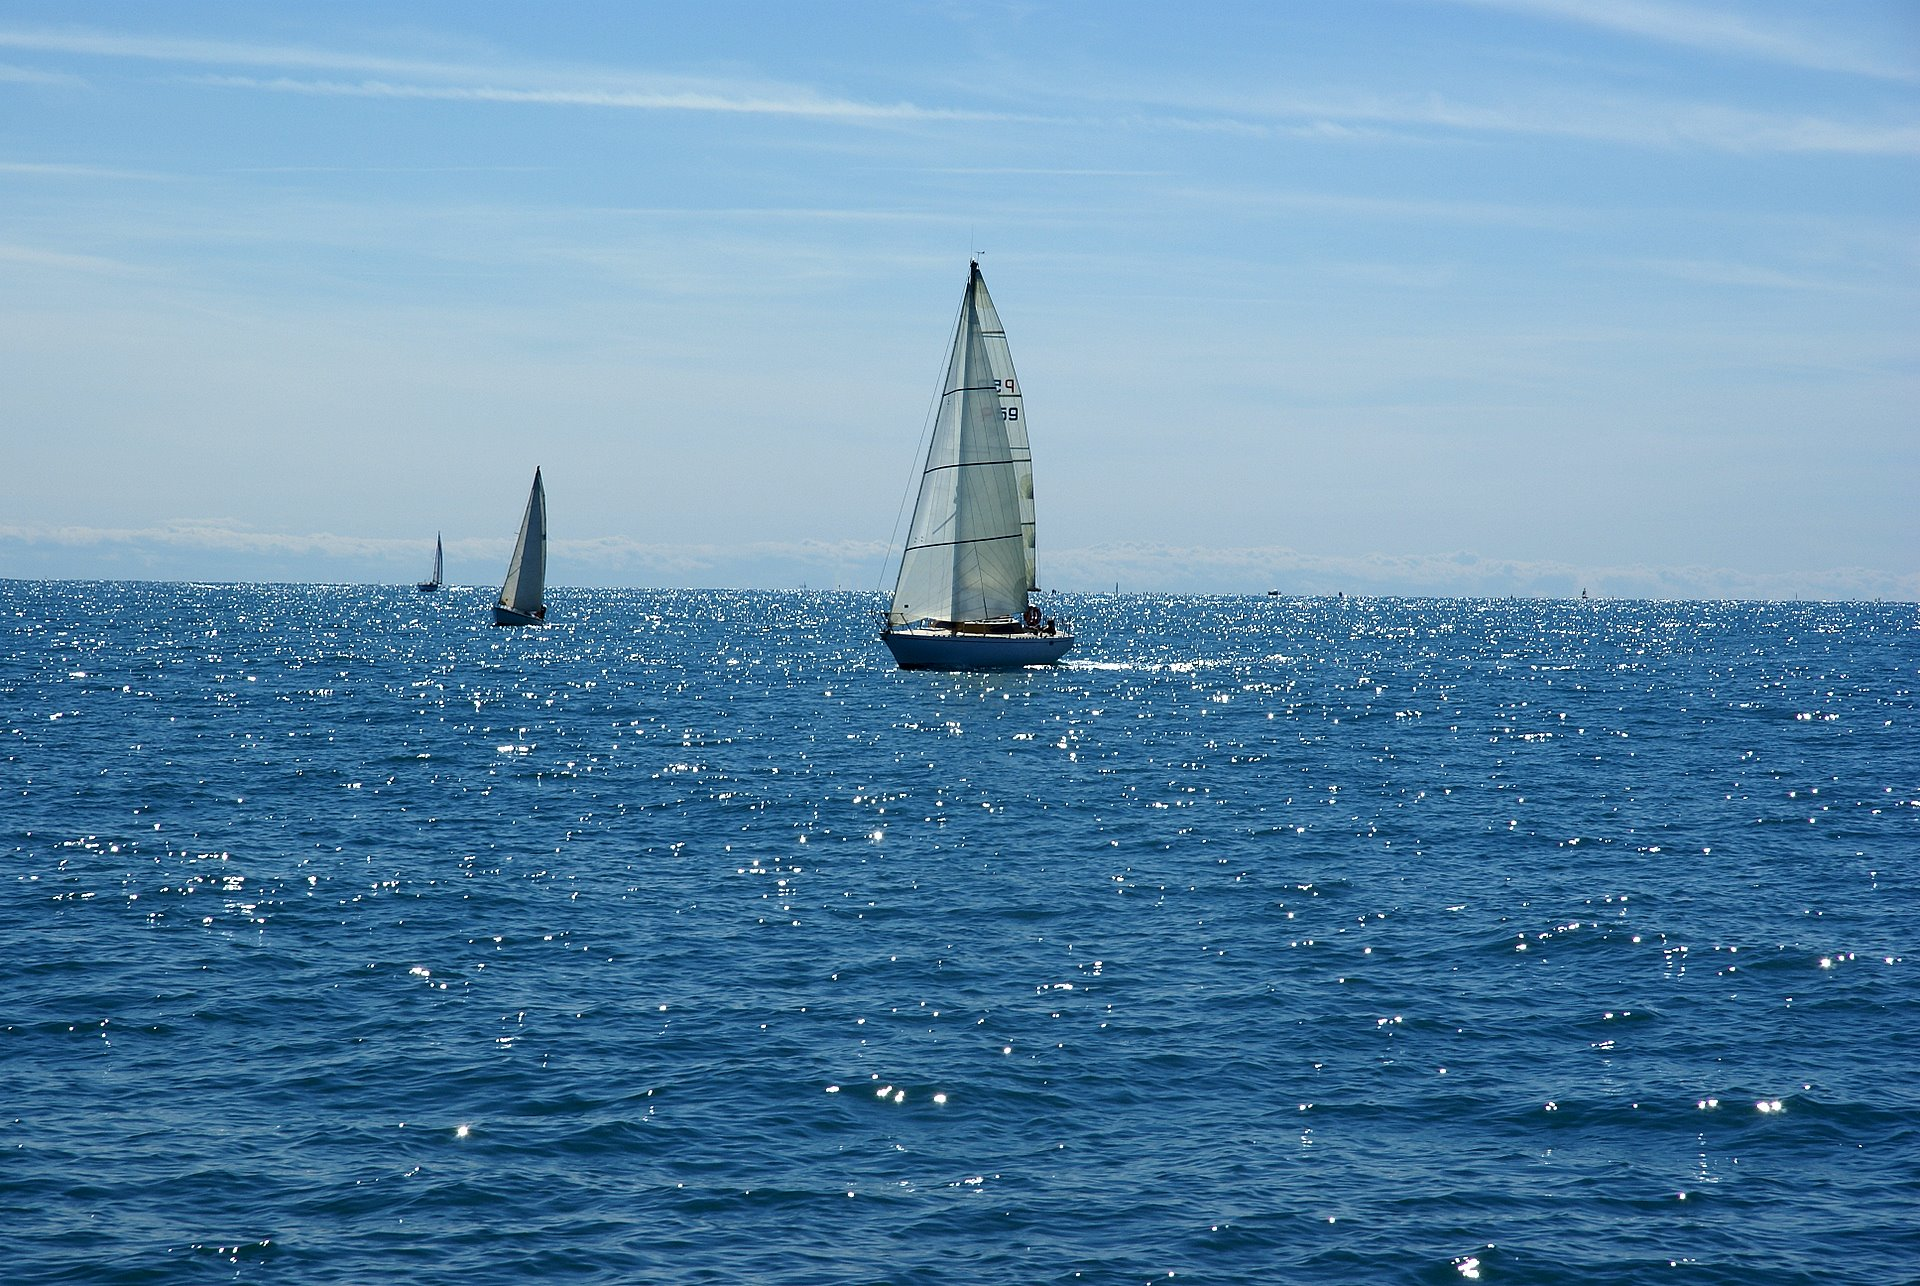 Sailboats Sea Wallpaper For Free Backgrounds